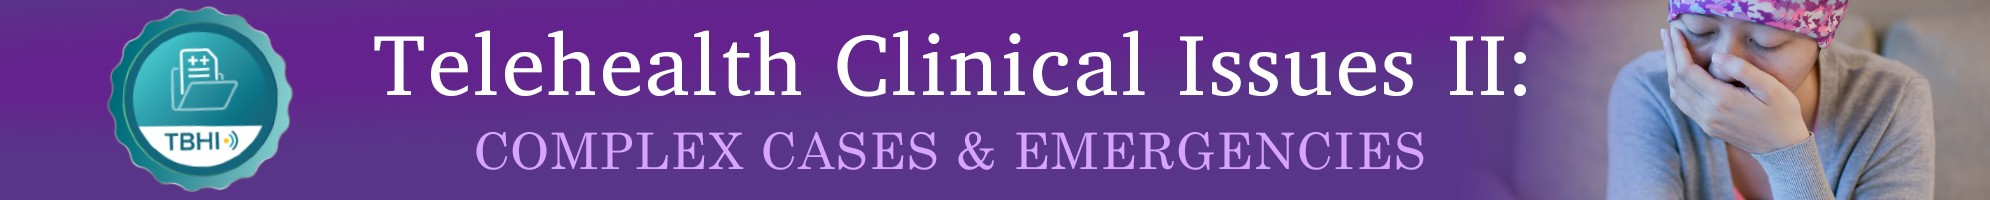 Telehealth Clinical Issues II